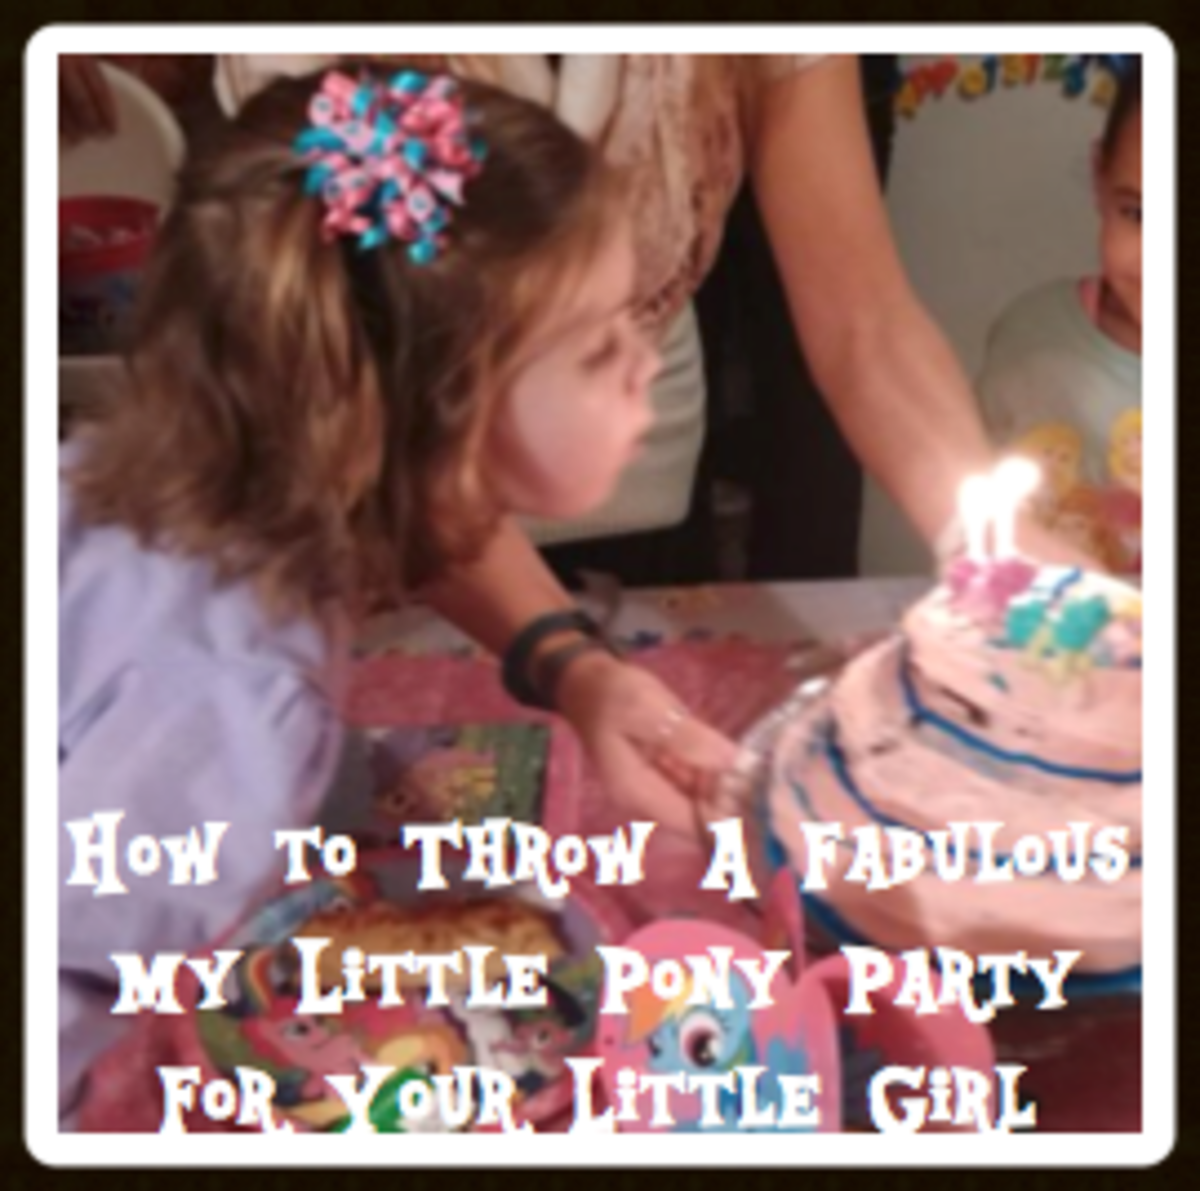 How to Throw a Fabulous My Little Pony Party for a Little Girl